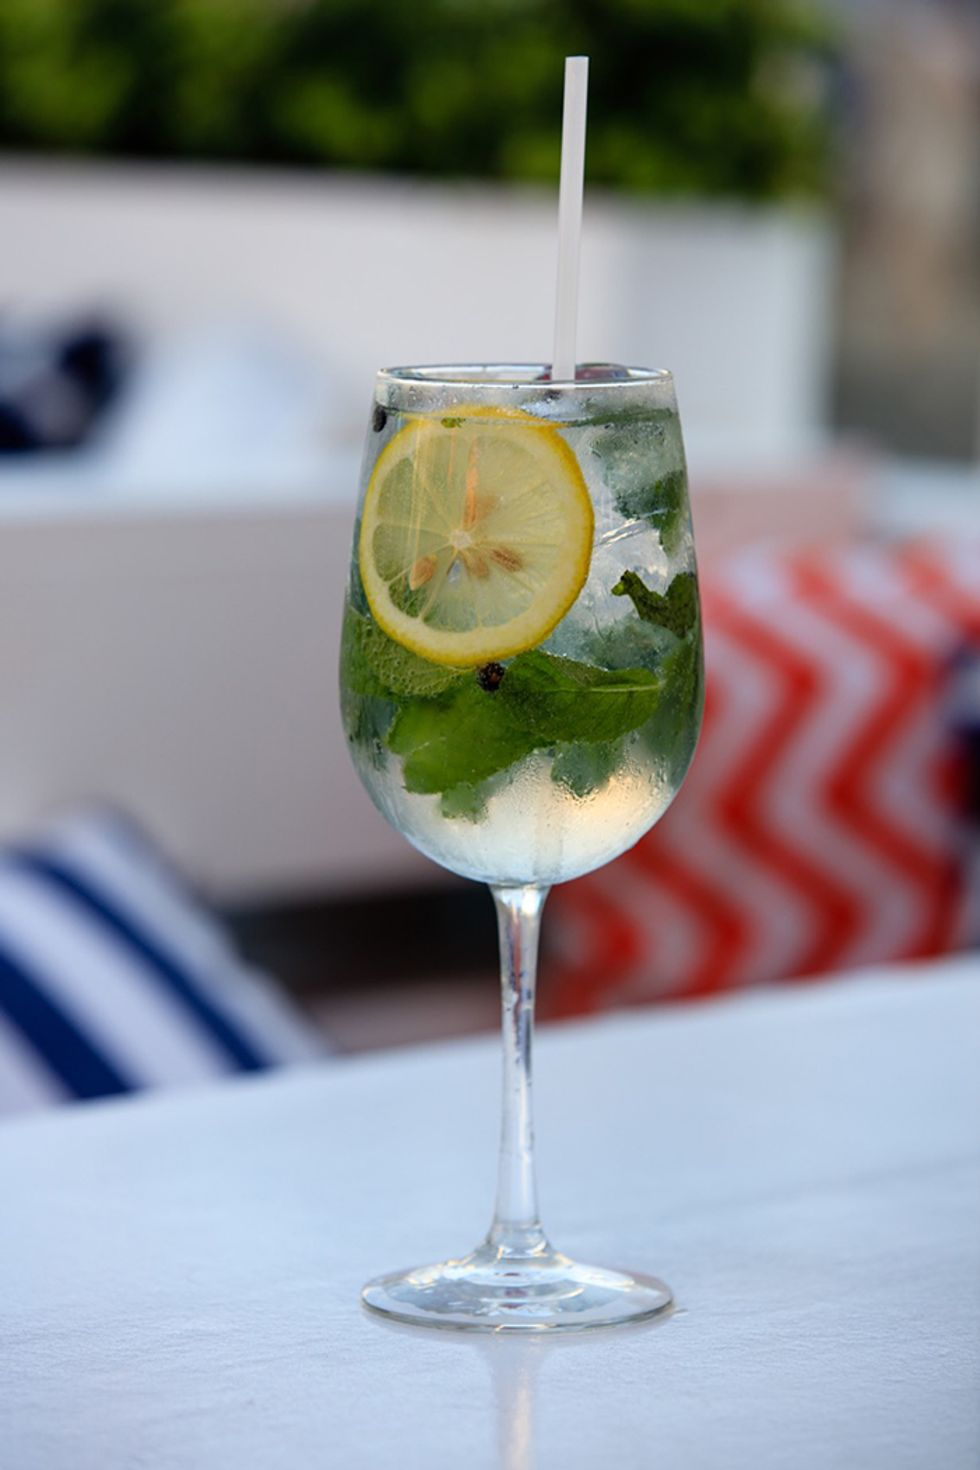 One of Ptown's Favorite Bars, Patio, Tells Us How to Make the Perfect Gin & Tonic